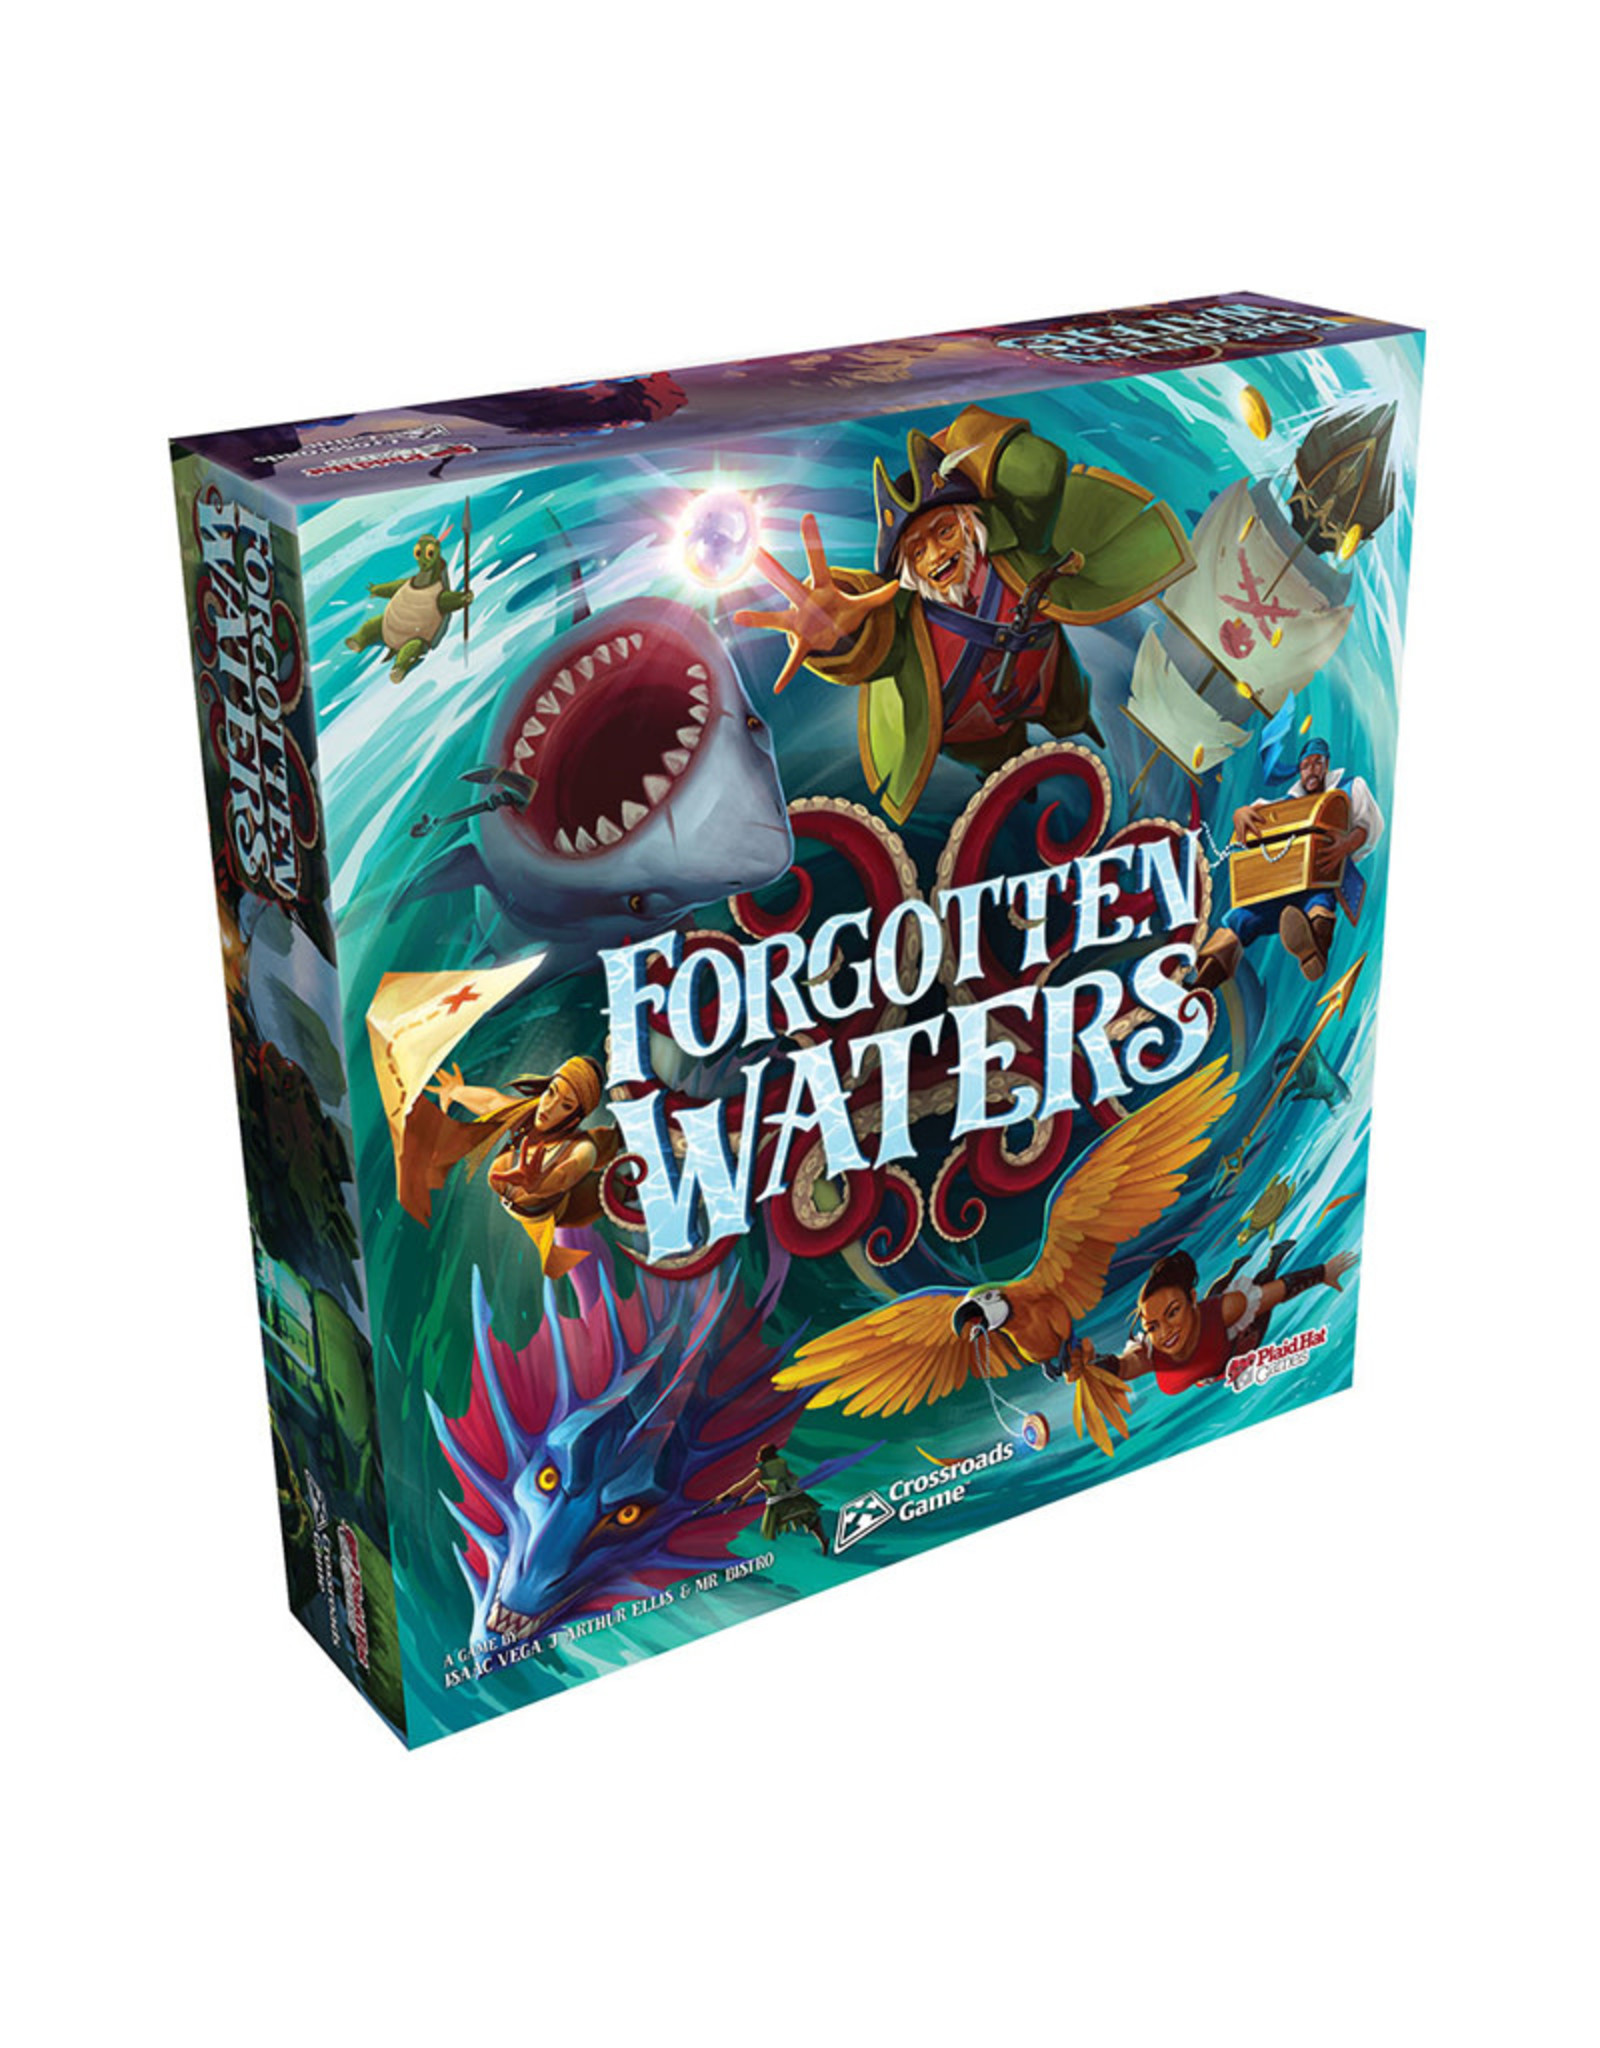 Plaid Hat Games Forgotten Waters: A Crossroads Games